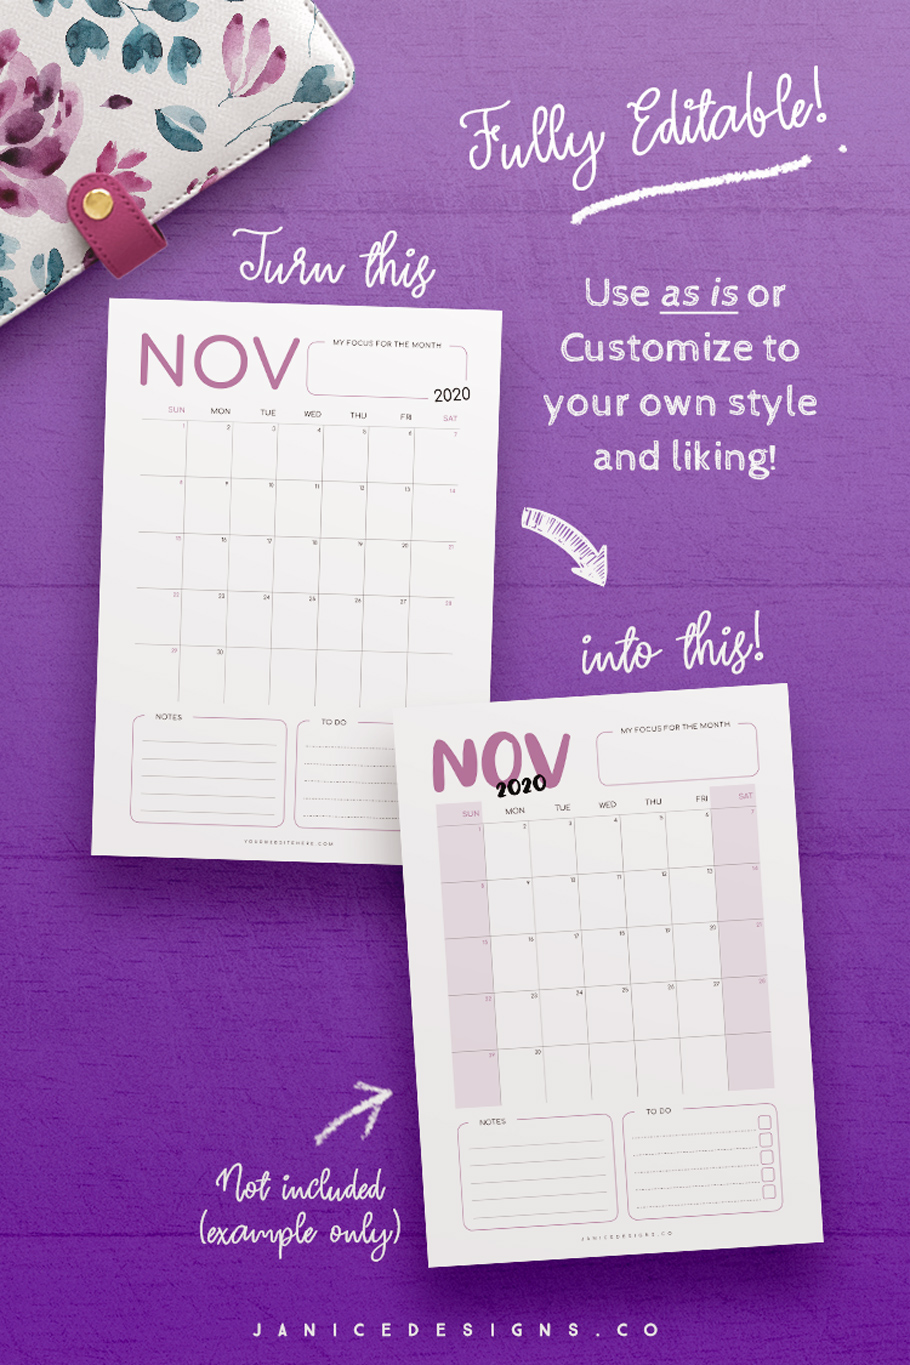 2020 Calendar InDesign Template for Commercial Use example image 4